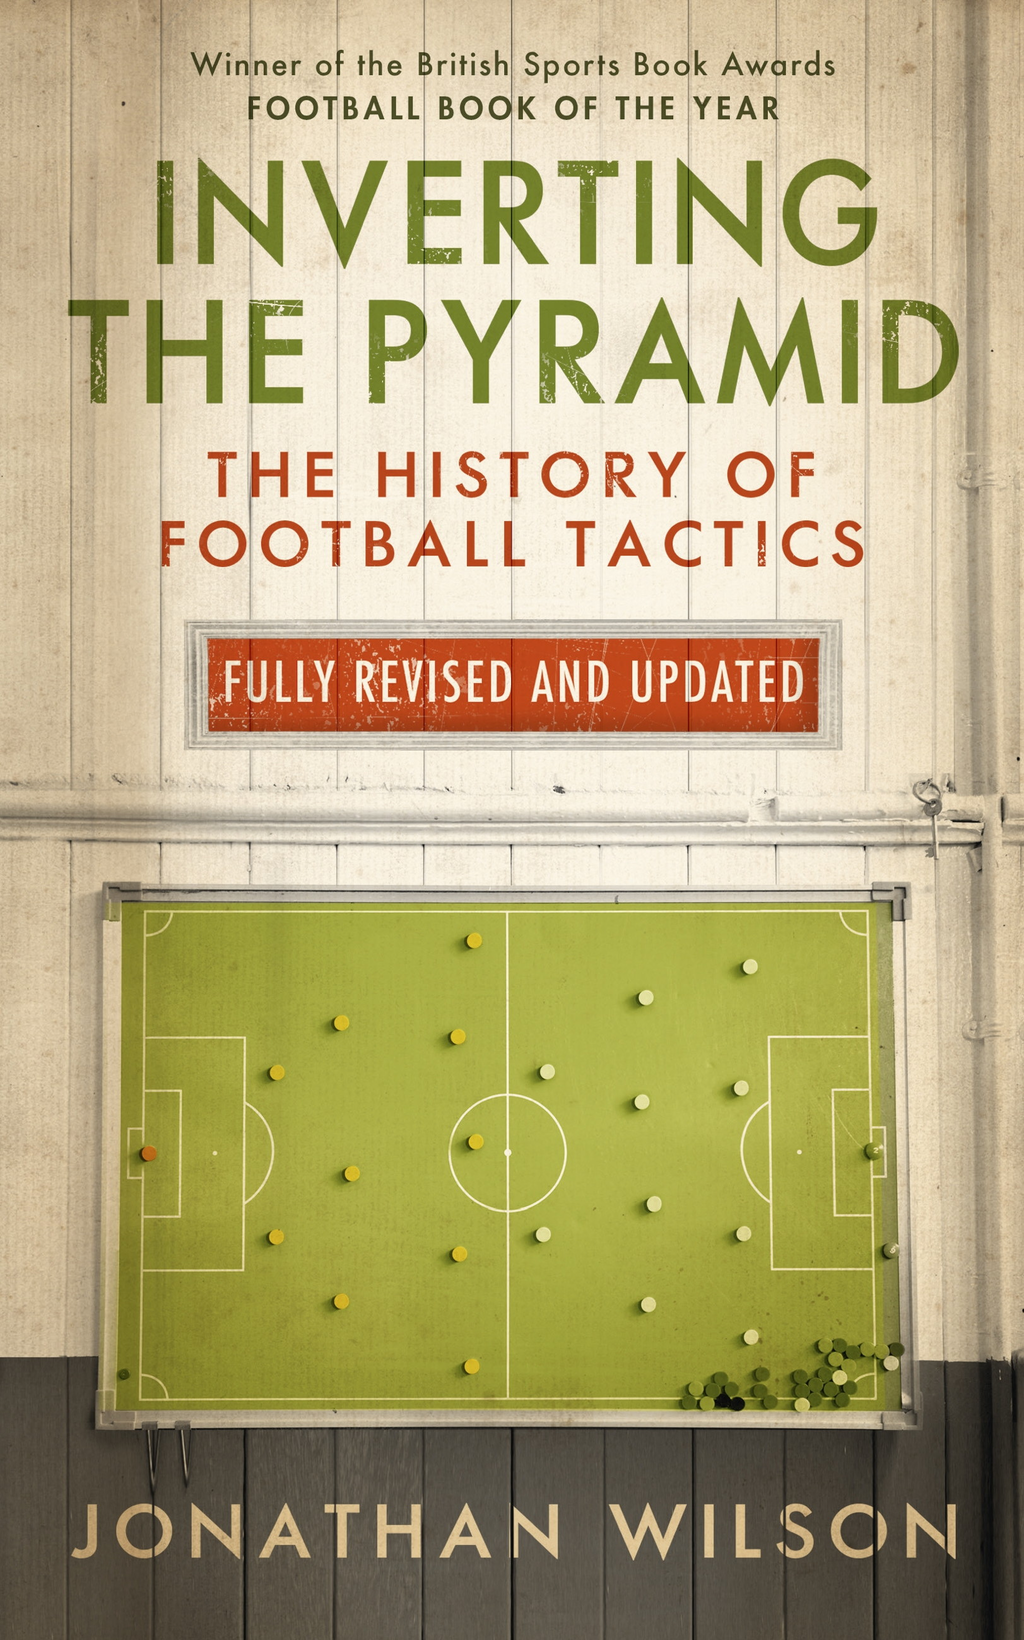 Inverting The Pyramid The History Of Football Tactics